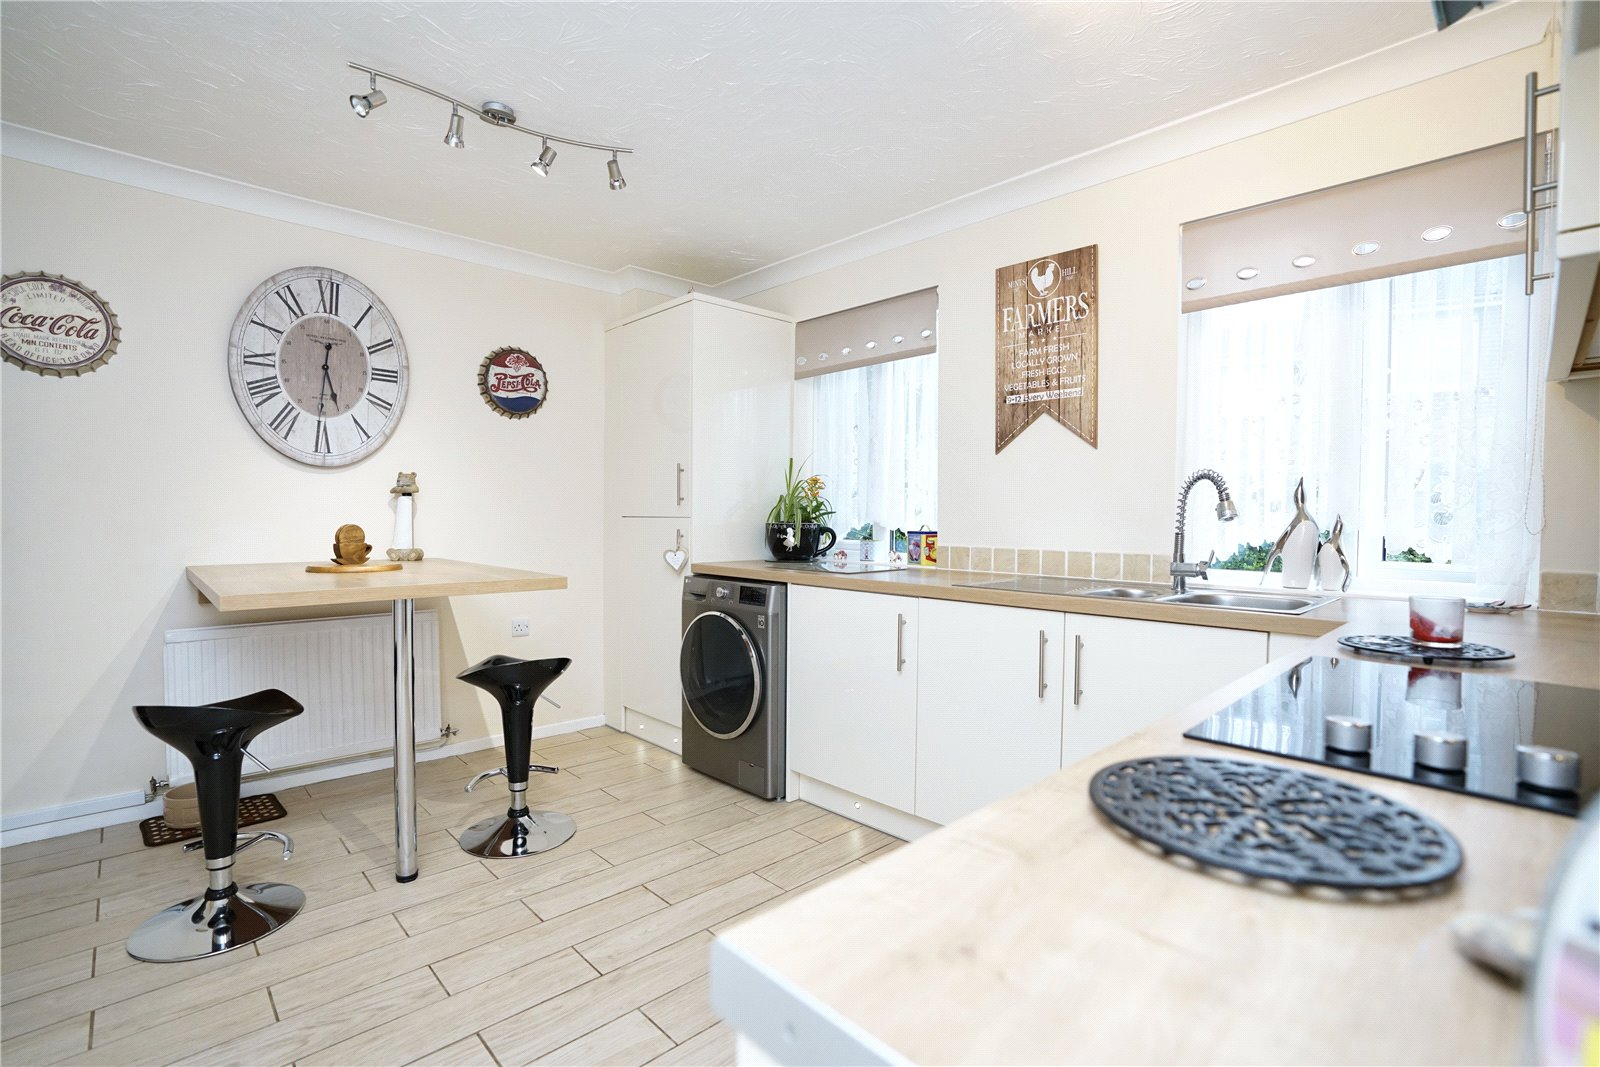 3 bed house for sale in Countess Close, Eaton Socon 1